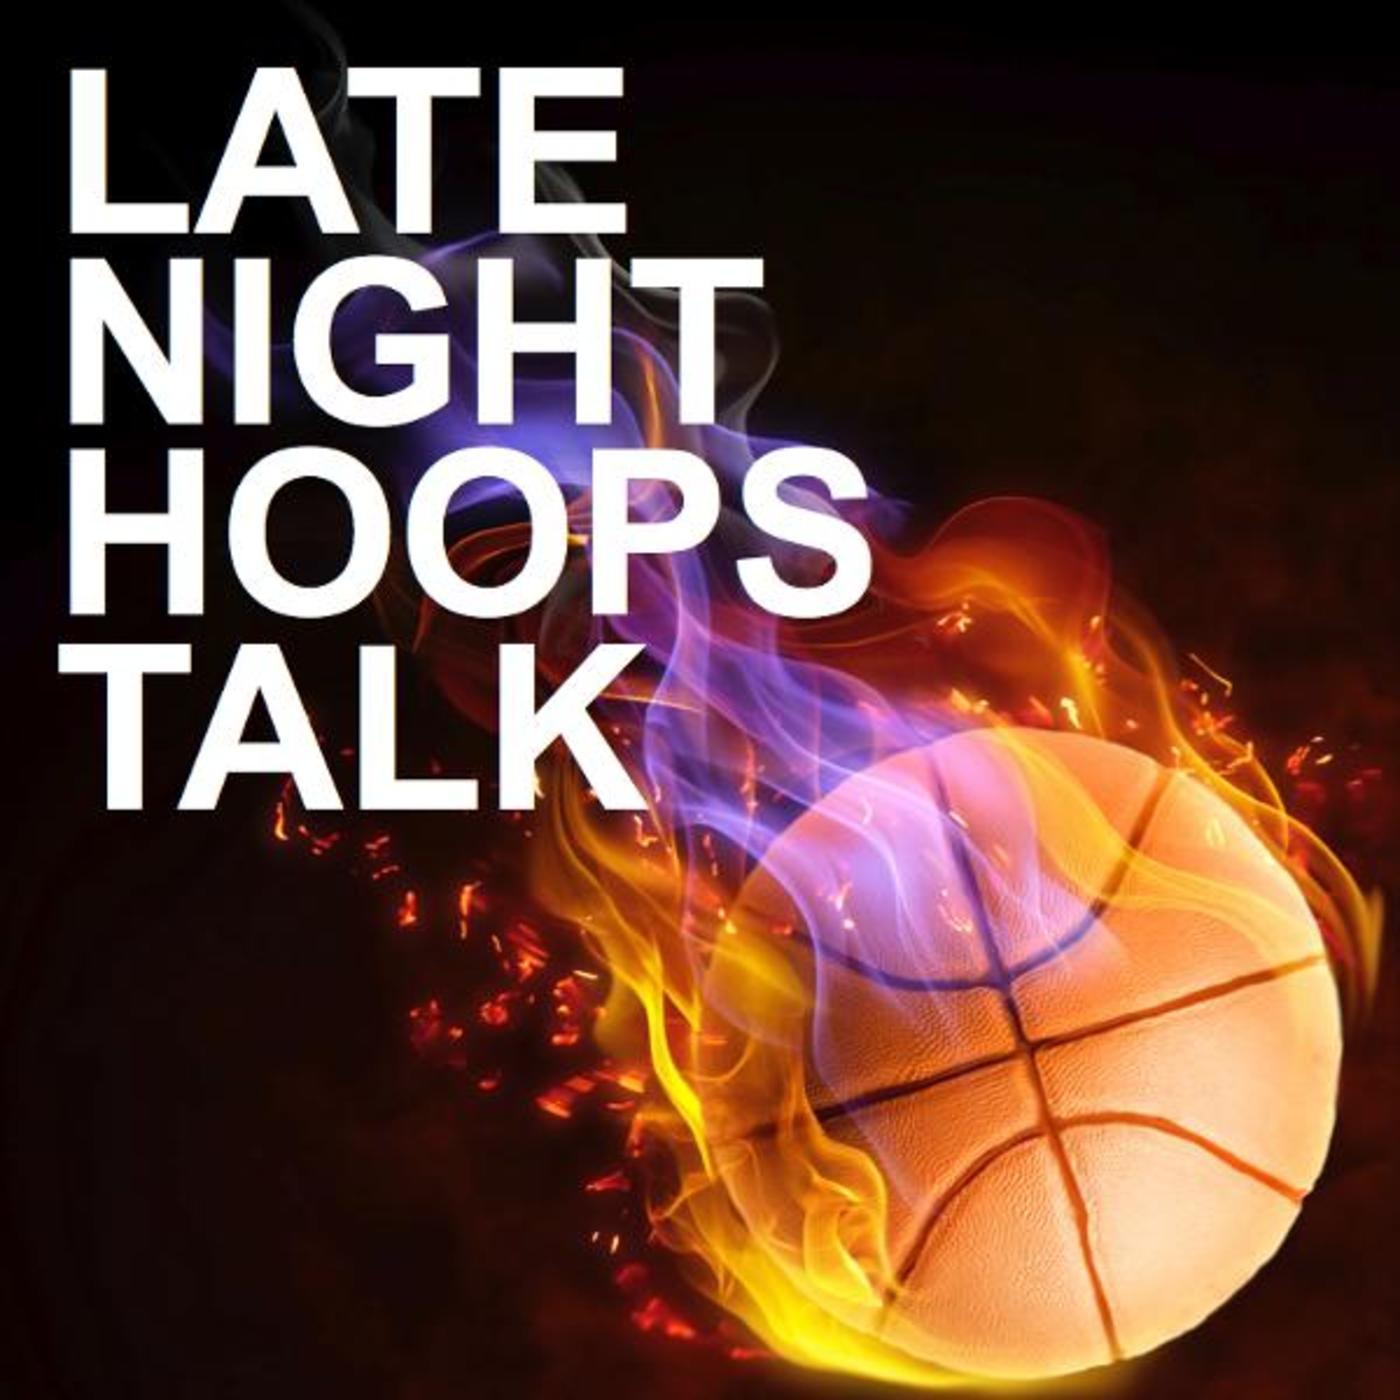 Late Night Hoops Talk